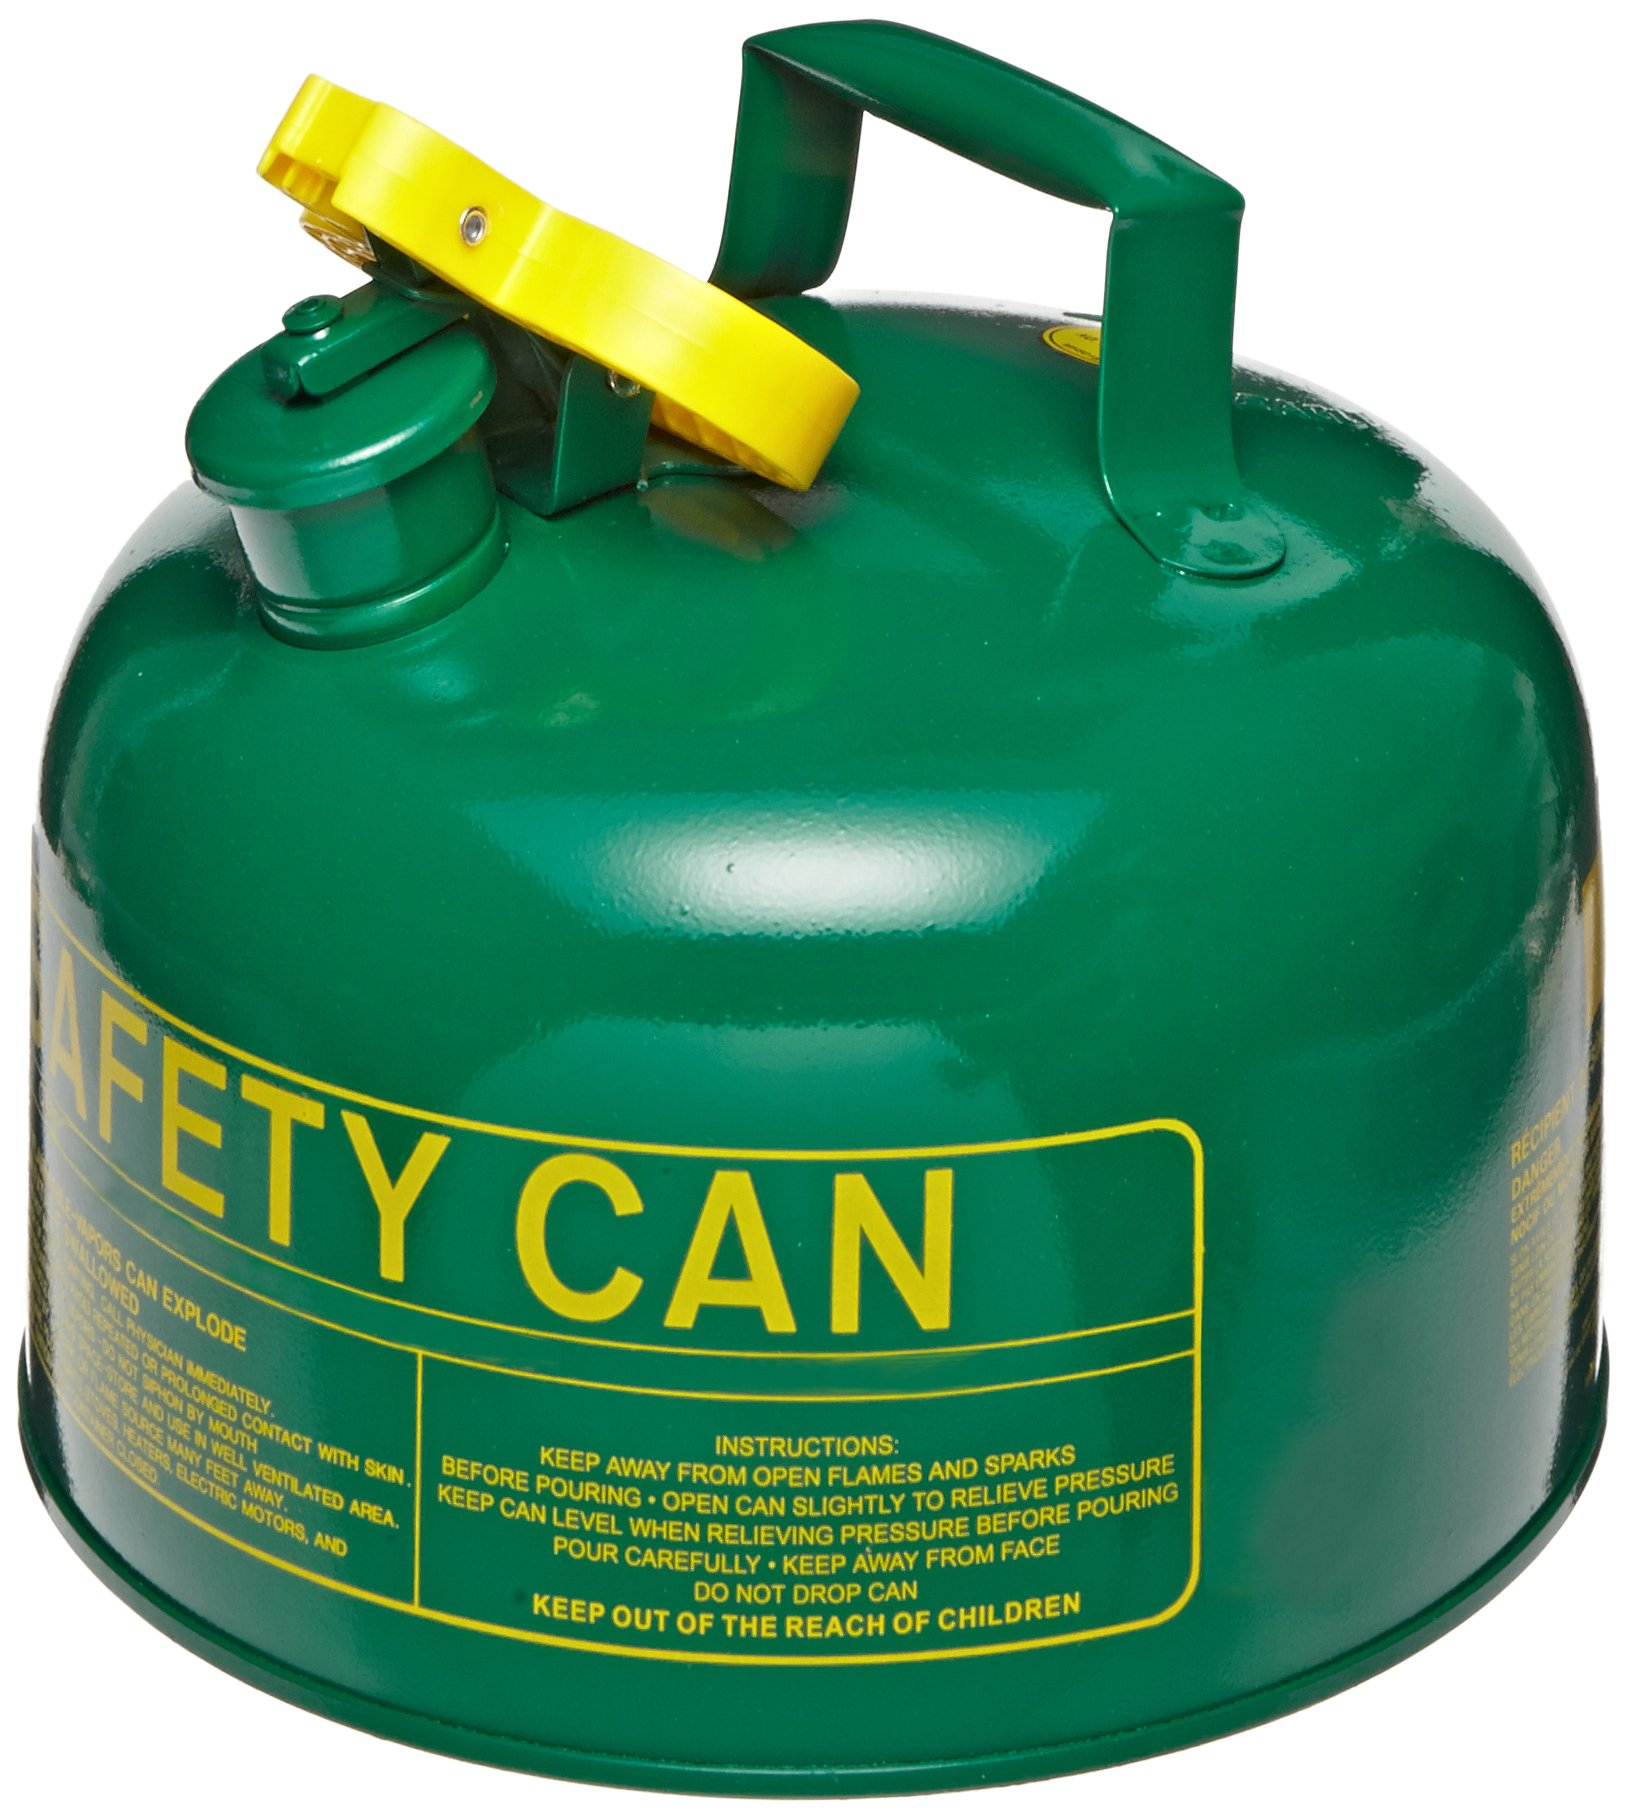 Eagle UI-10-SG Type I Metal Safety Can, Combustibles, 9'' Width x 8'' Depth, 1 Gallon Capacity, Green